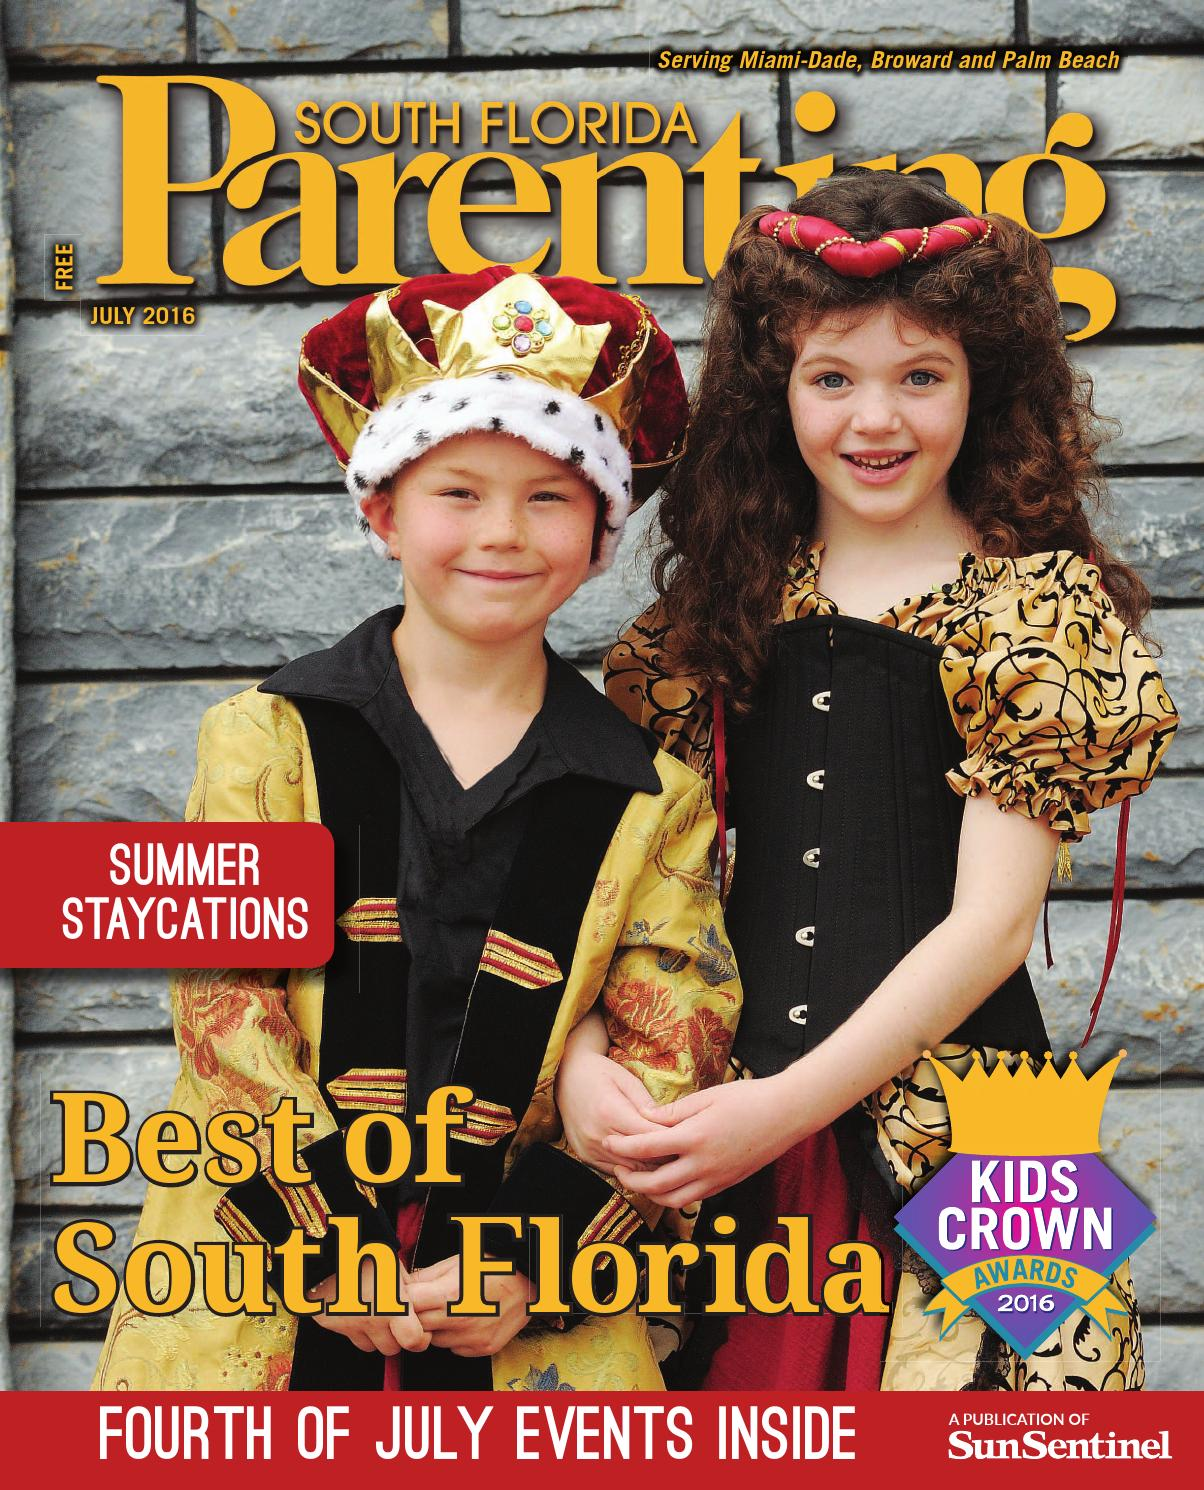 f992c800b377 South Florida Parenting July 2016 by Forum Publishing Group - issuu